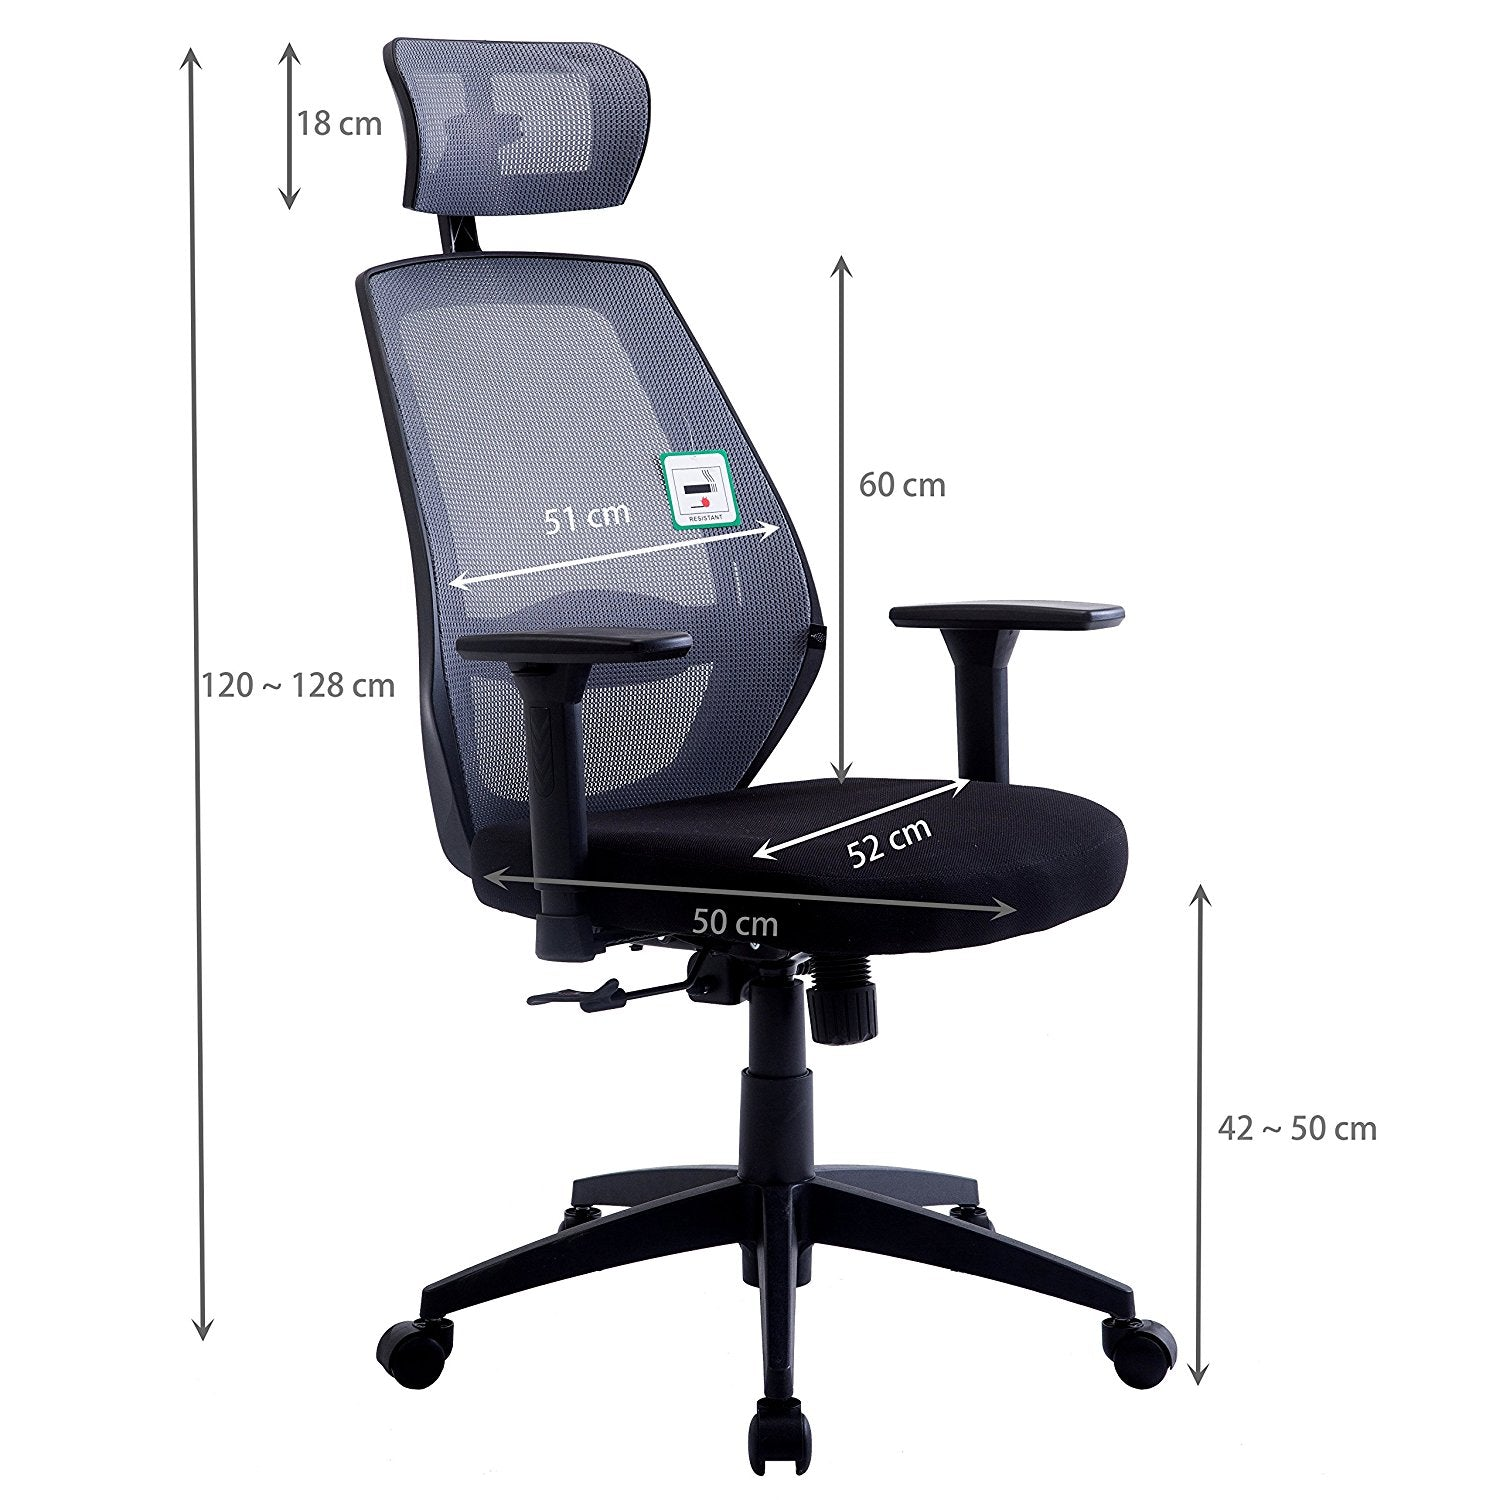 Mesh Fabric High Back Swivel Office Chair With Adjustable